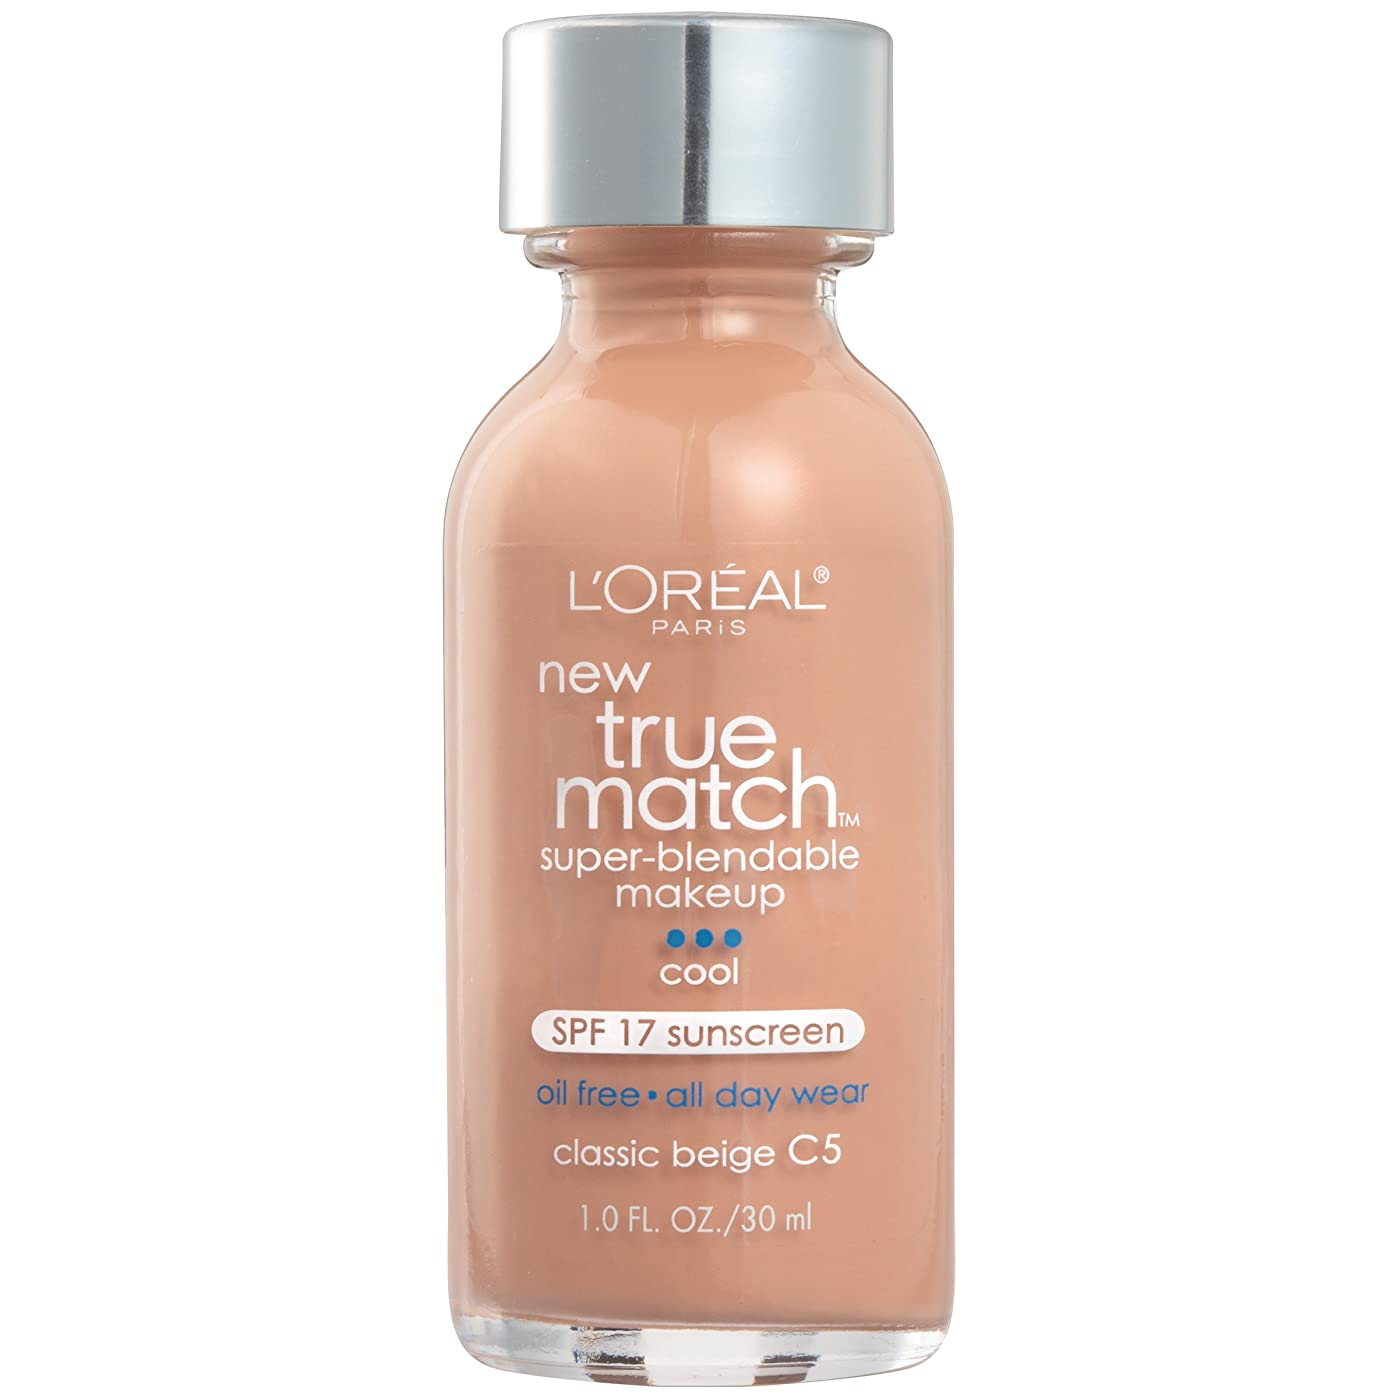 考えた故意に運ぶL'OREAL TRUE MATCH SUPER-BLENDABLE MAKEUP #C5 CLASSIC BEIGE